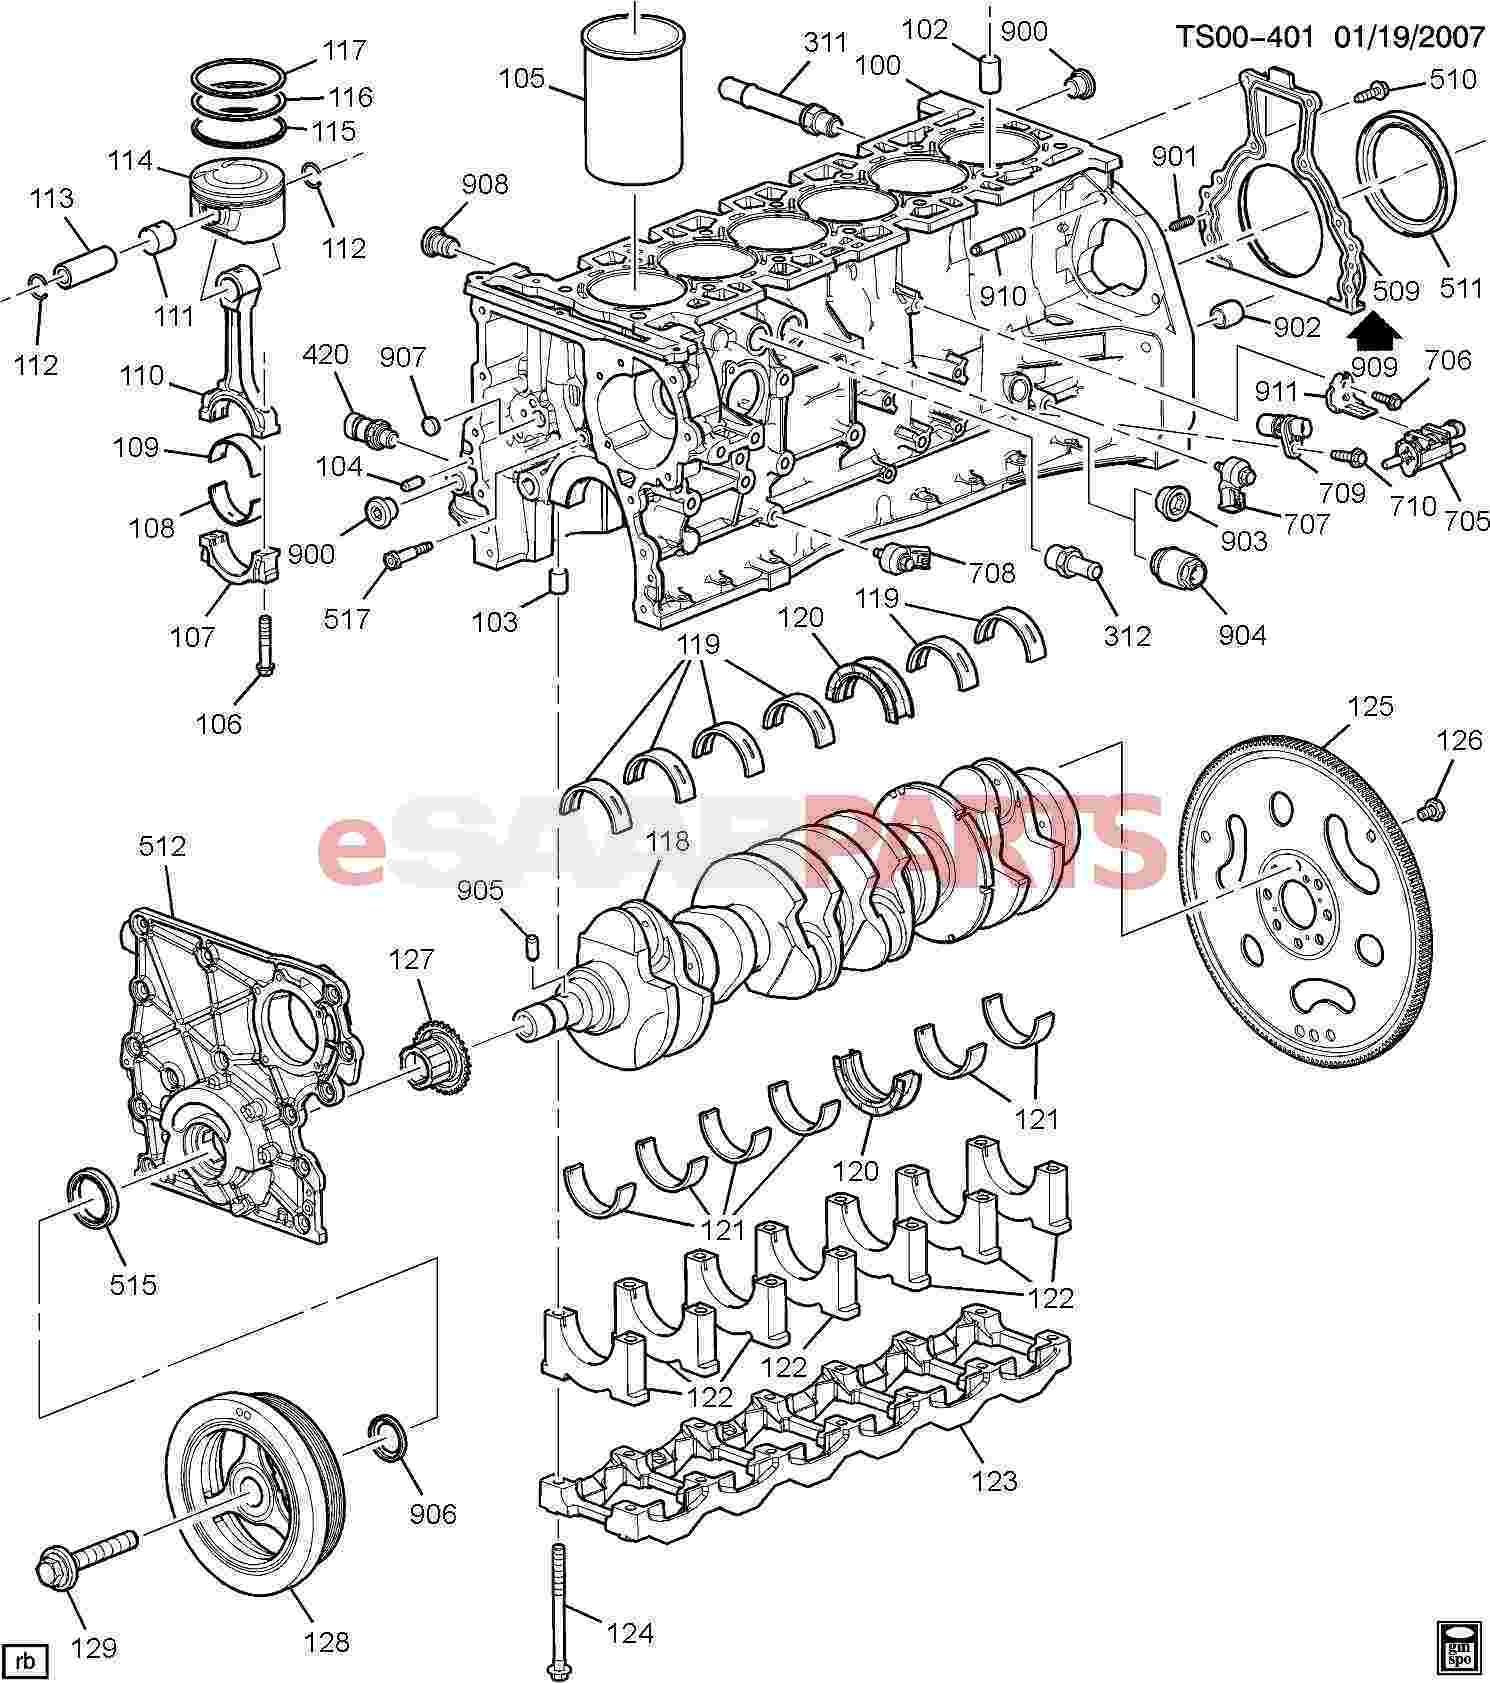 L6 Engine Diagram Automotive Wiring Roto Phase Chevrolet 4 2 Library Rh 85 Muehlwald De 42l Paccar Mx